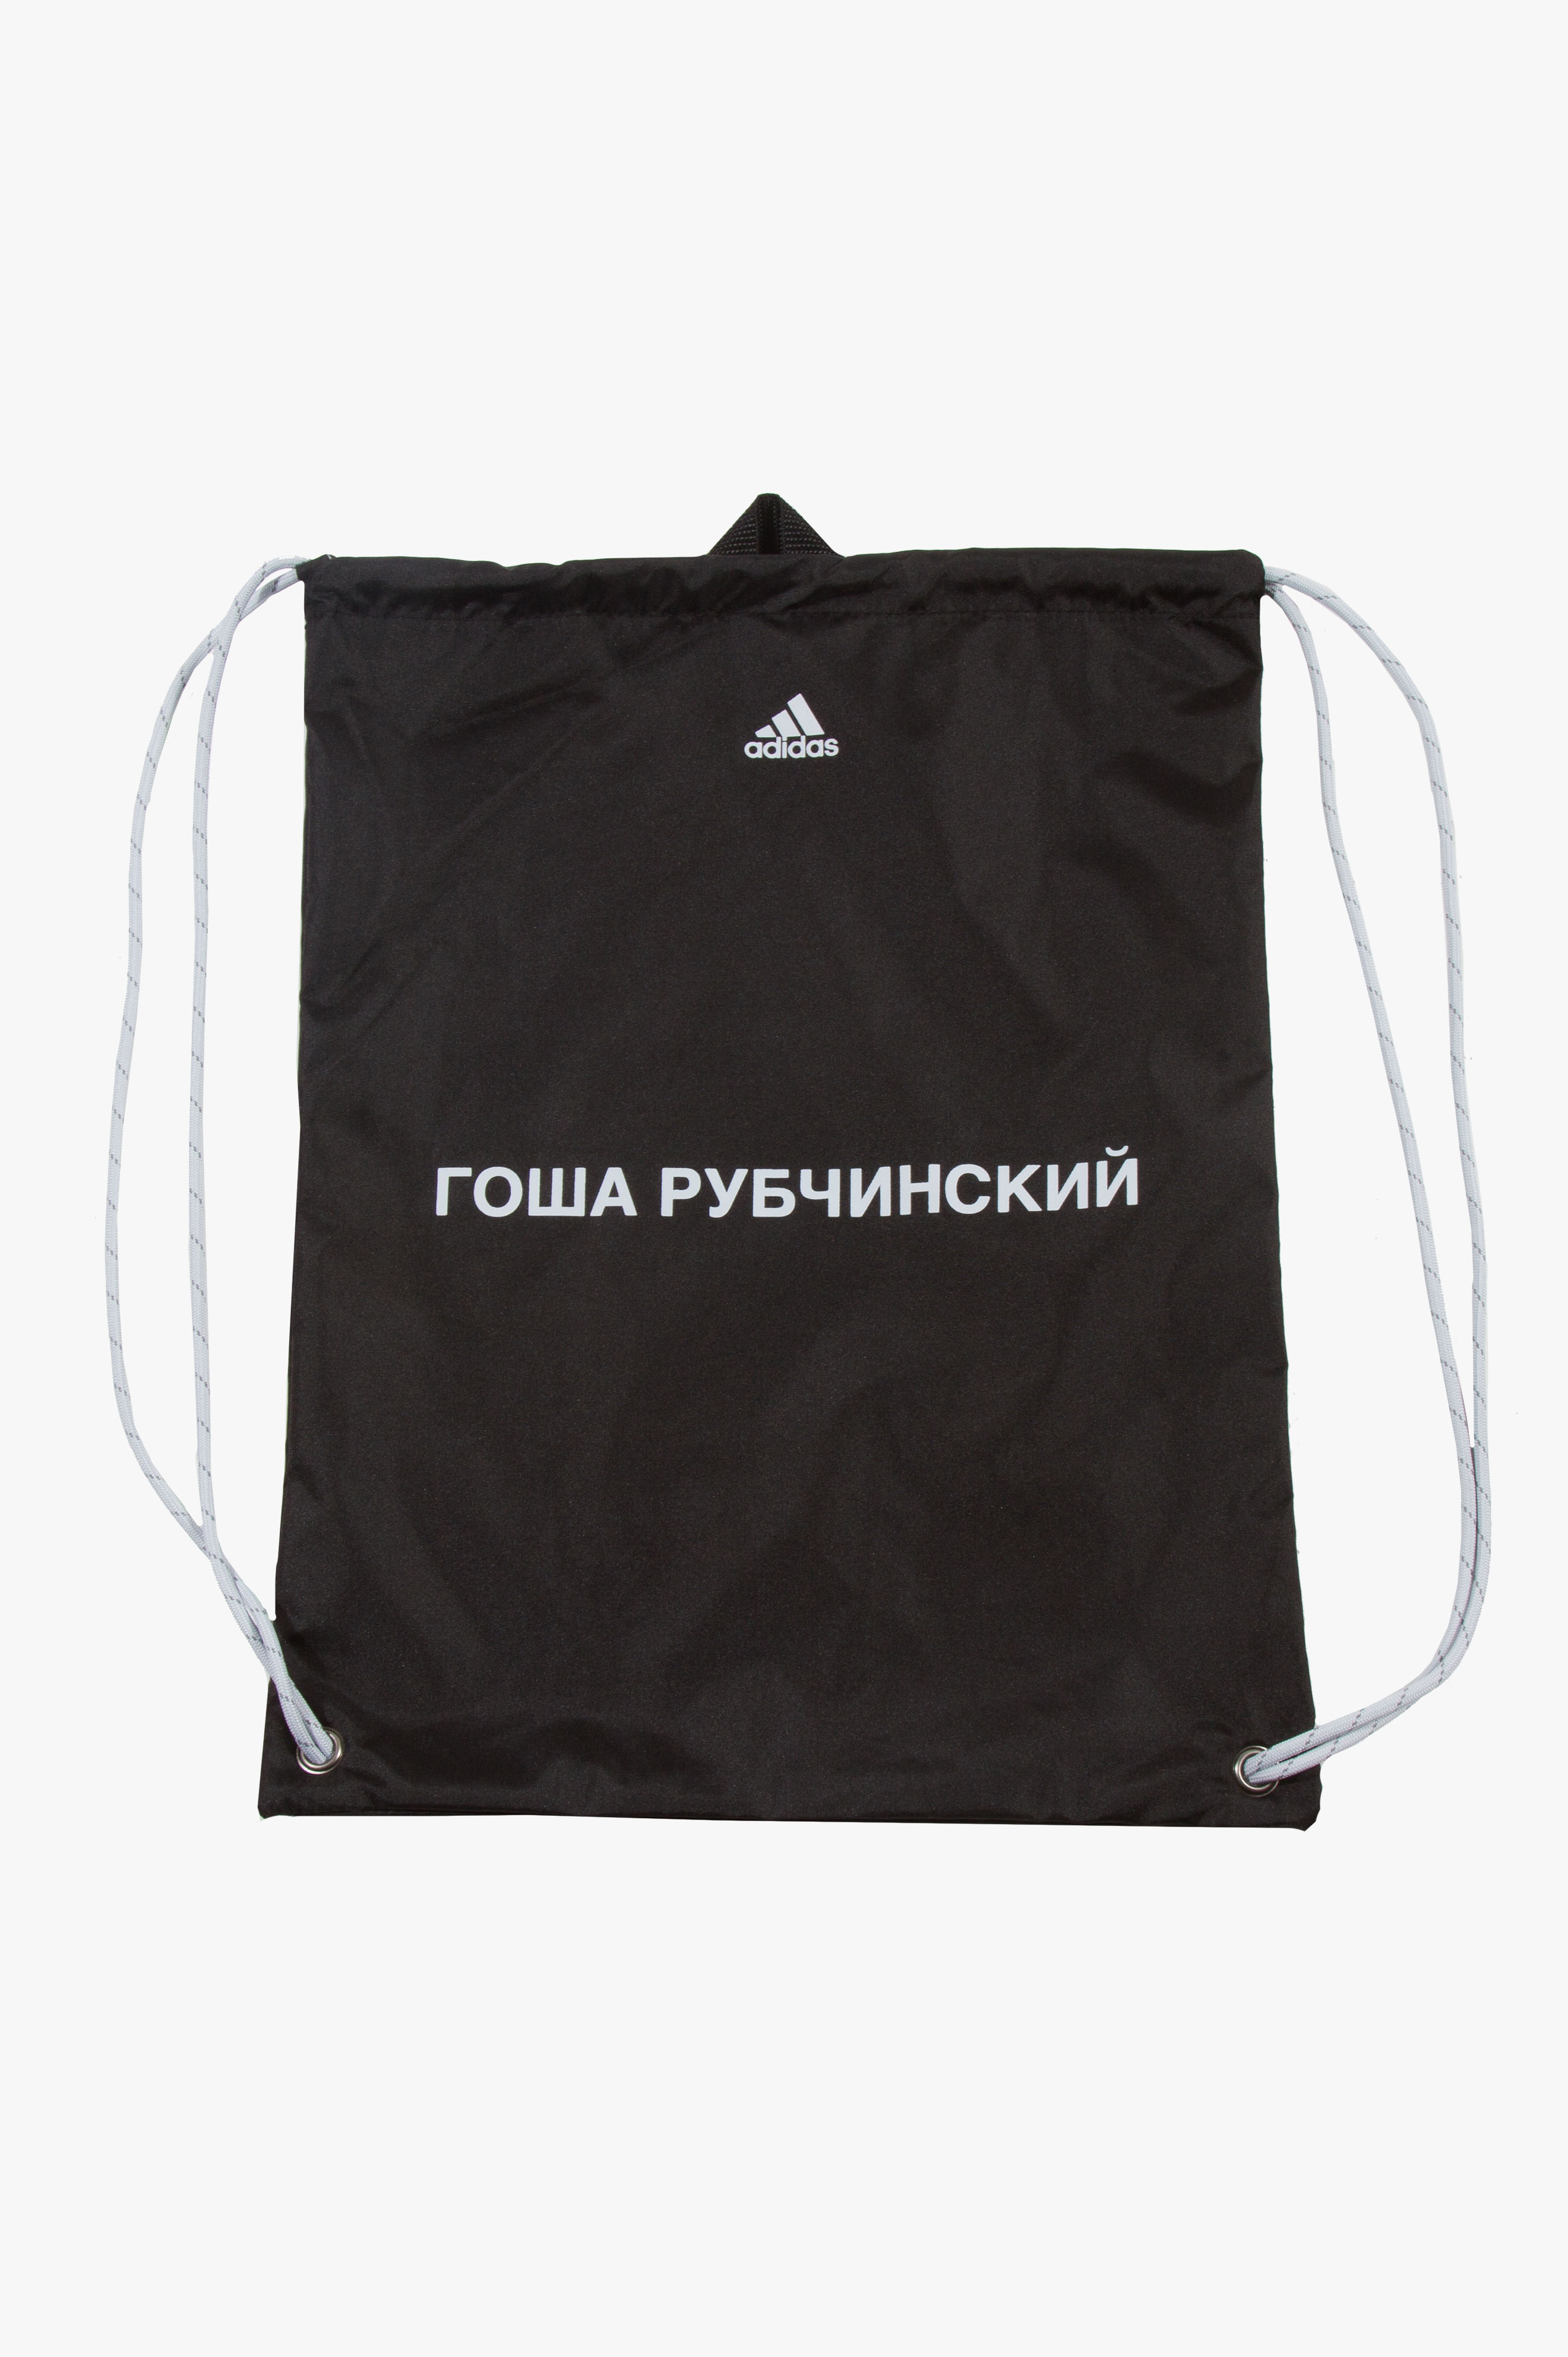 x Adidas Gym Bag Black